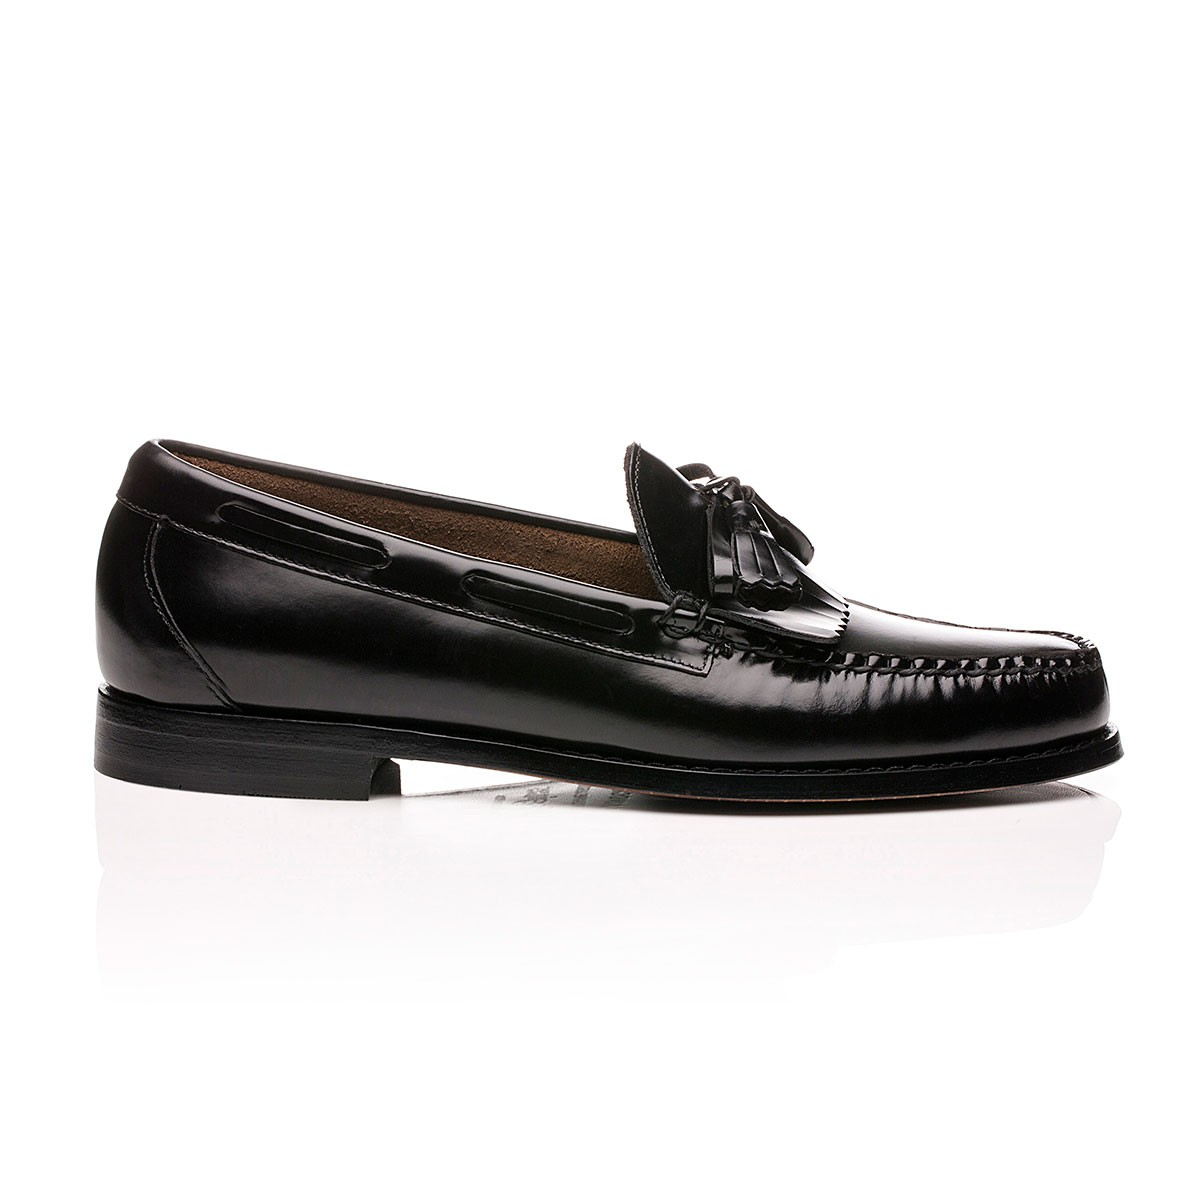 G.H. Bass & Co. Weejuns Layton Kiltie Loafers Black Leather